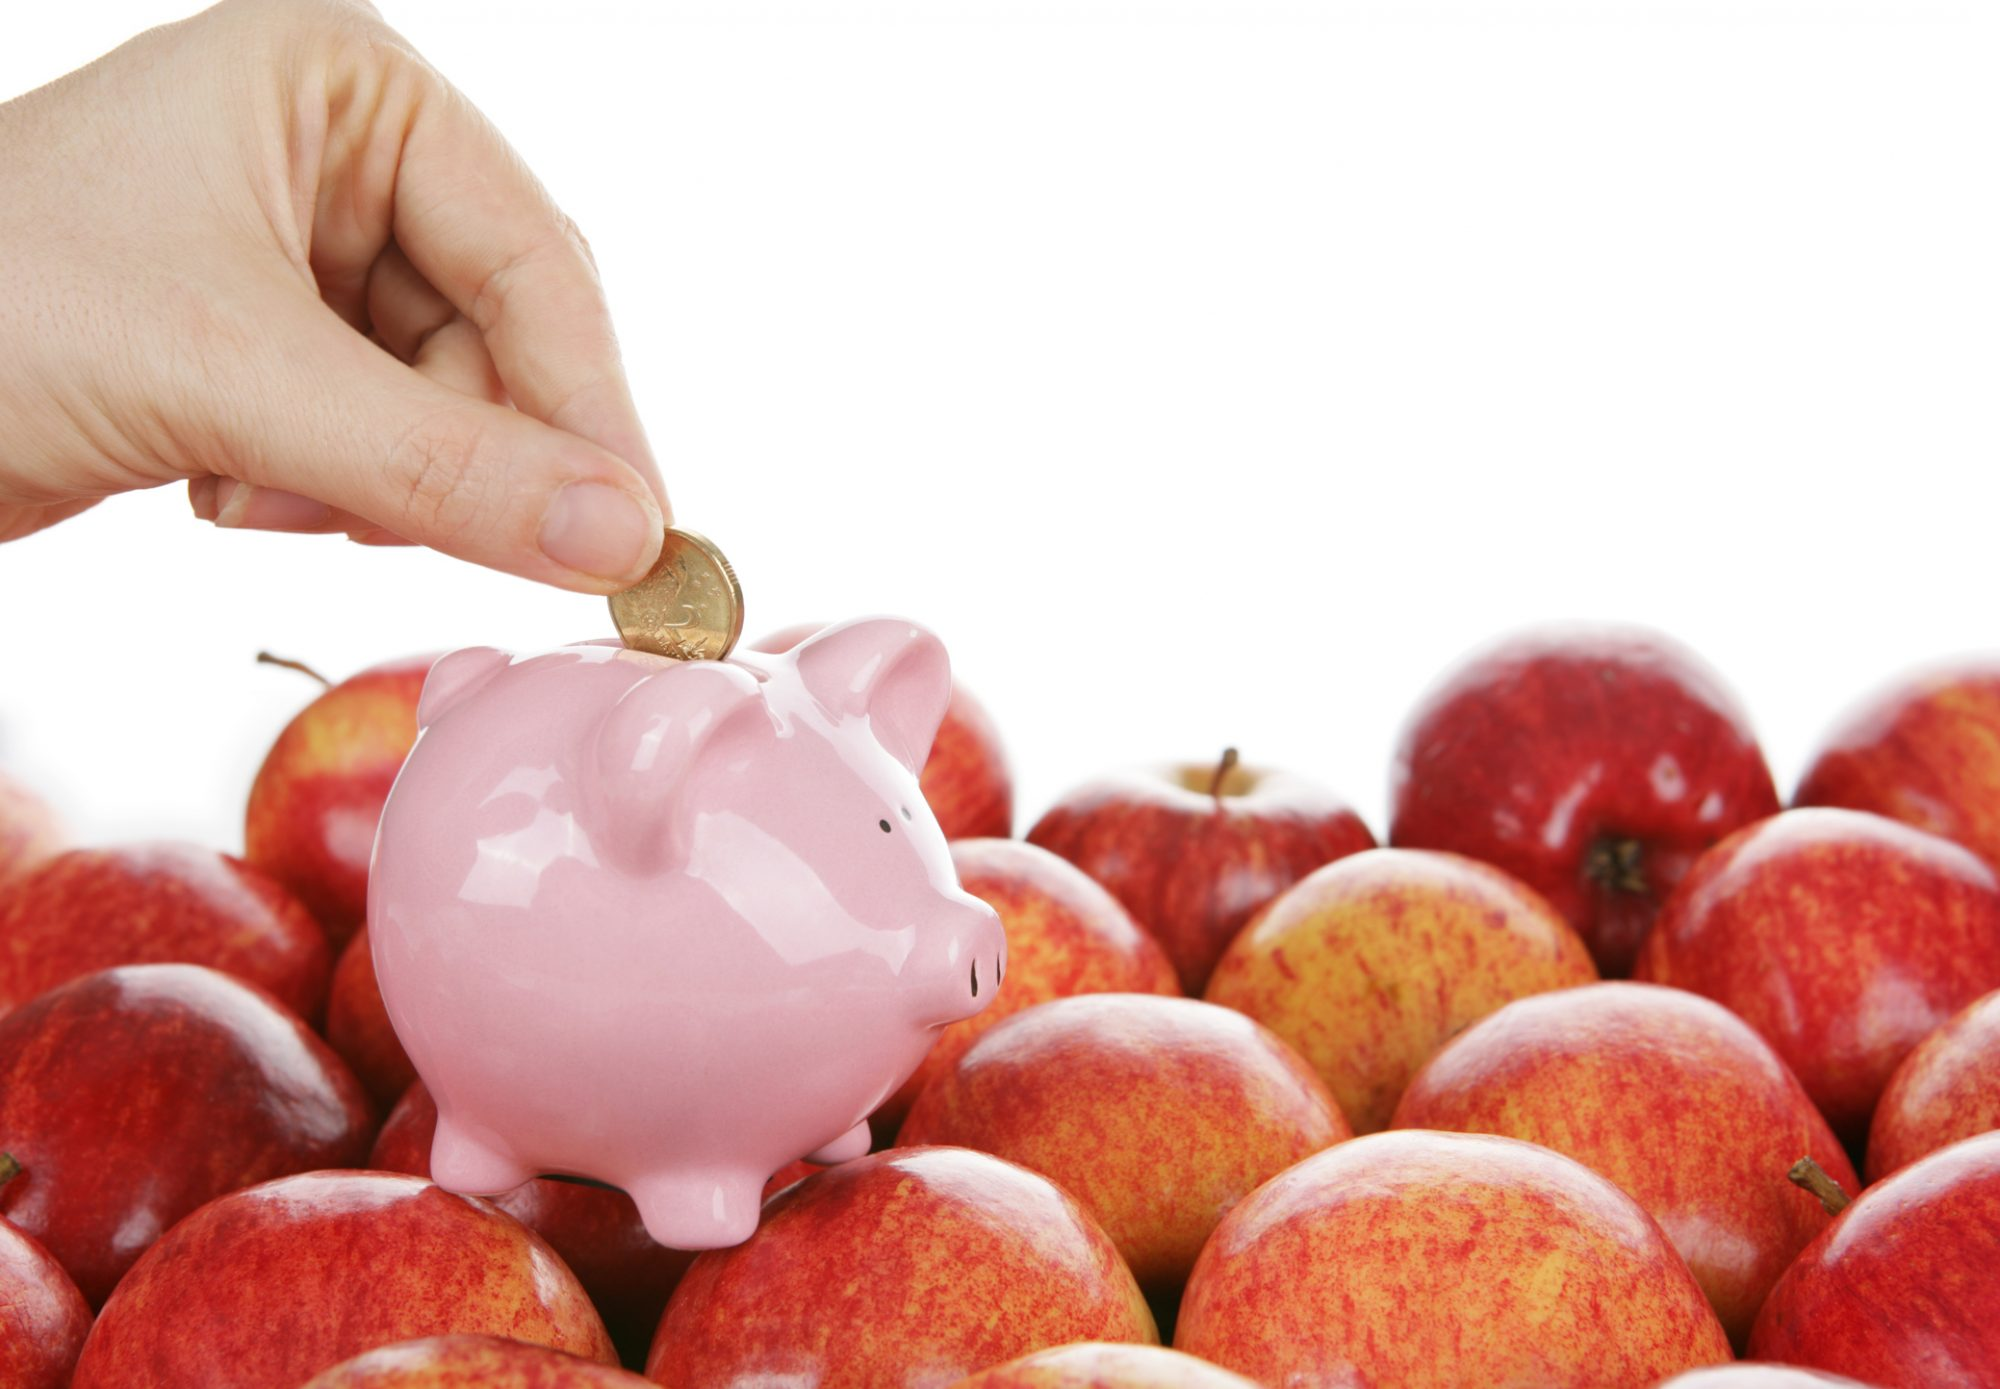 getty-piggy-bank-image